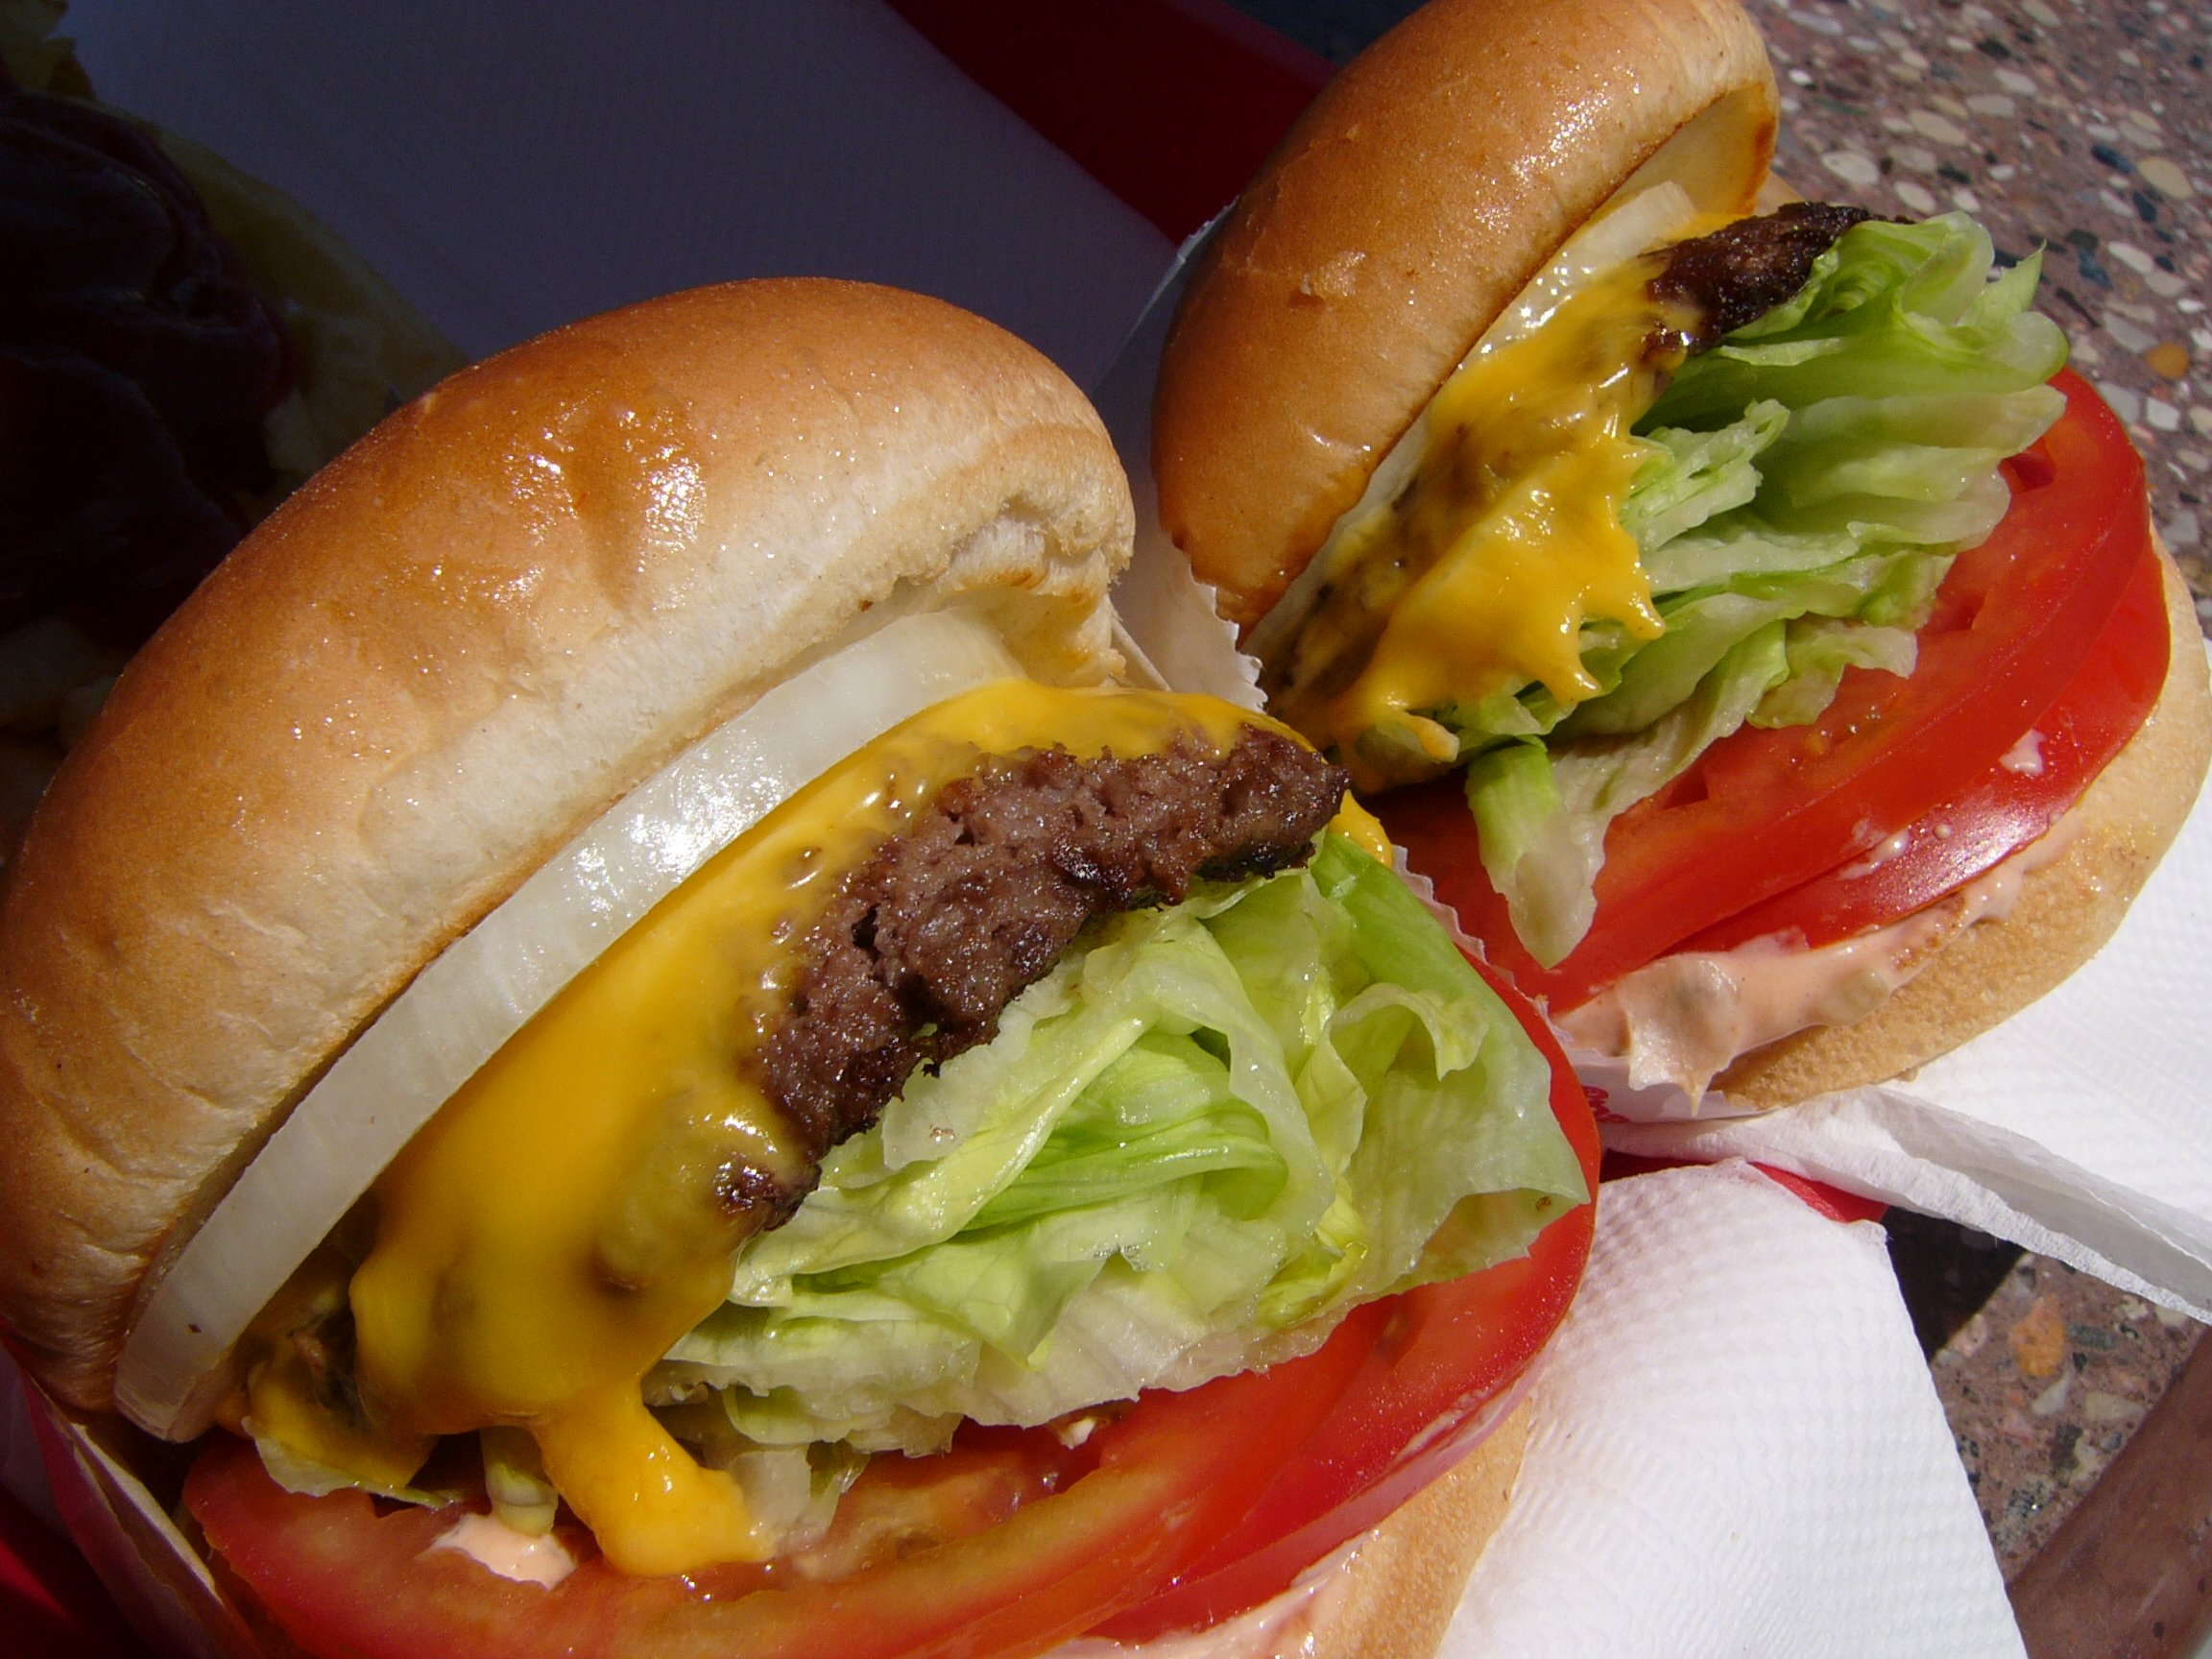 A pair of In-N-Out cheeseburgers